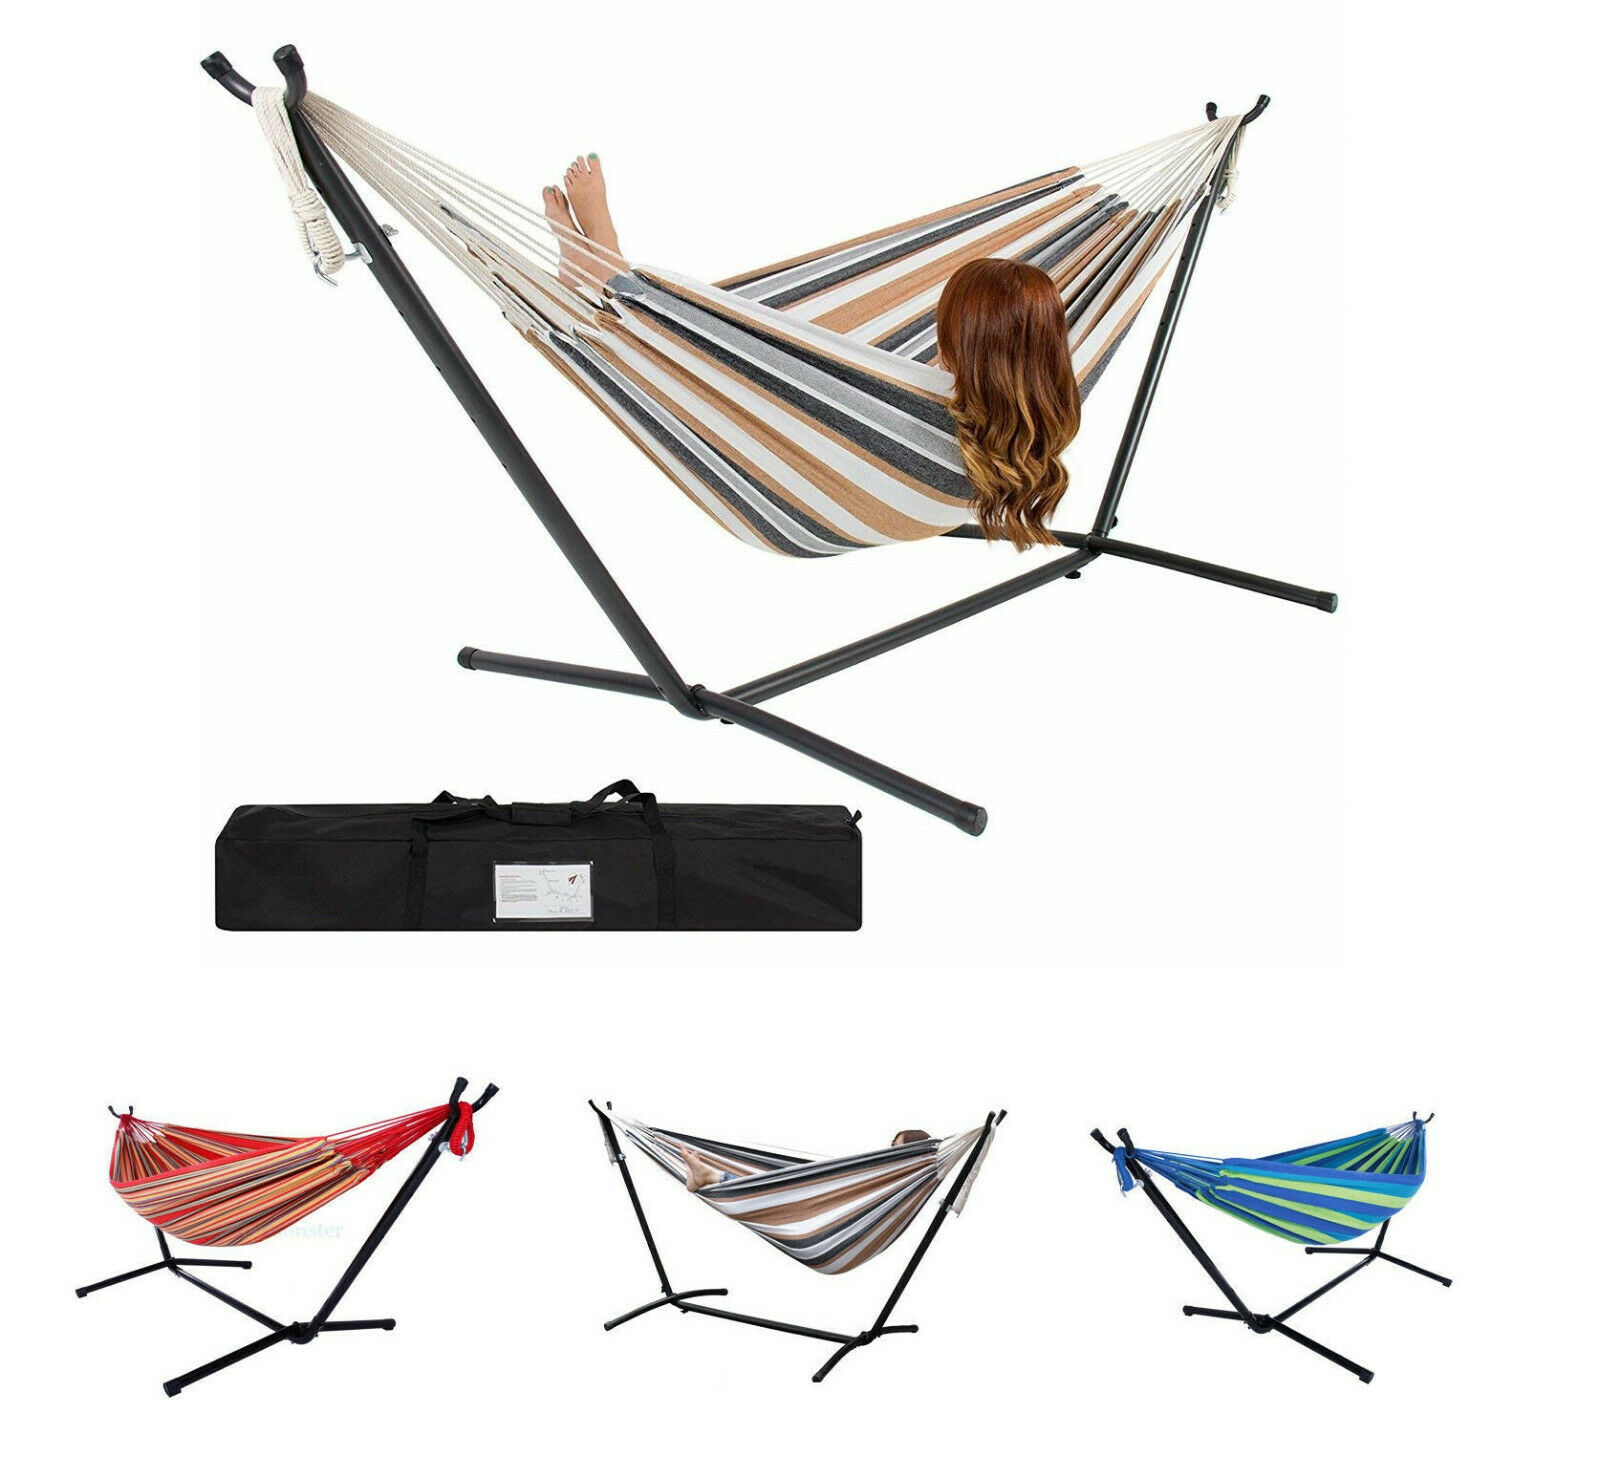 New Double Hammock With Space Saving Steel Stand Includes Ca